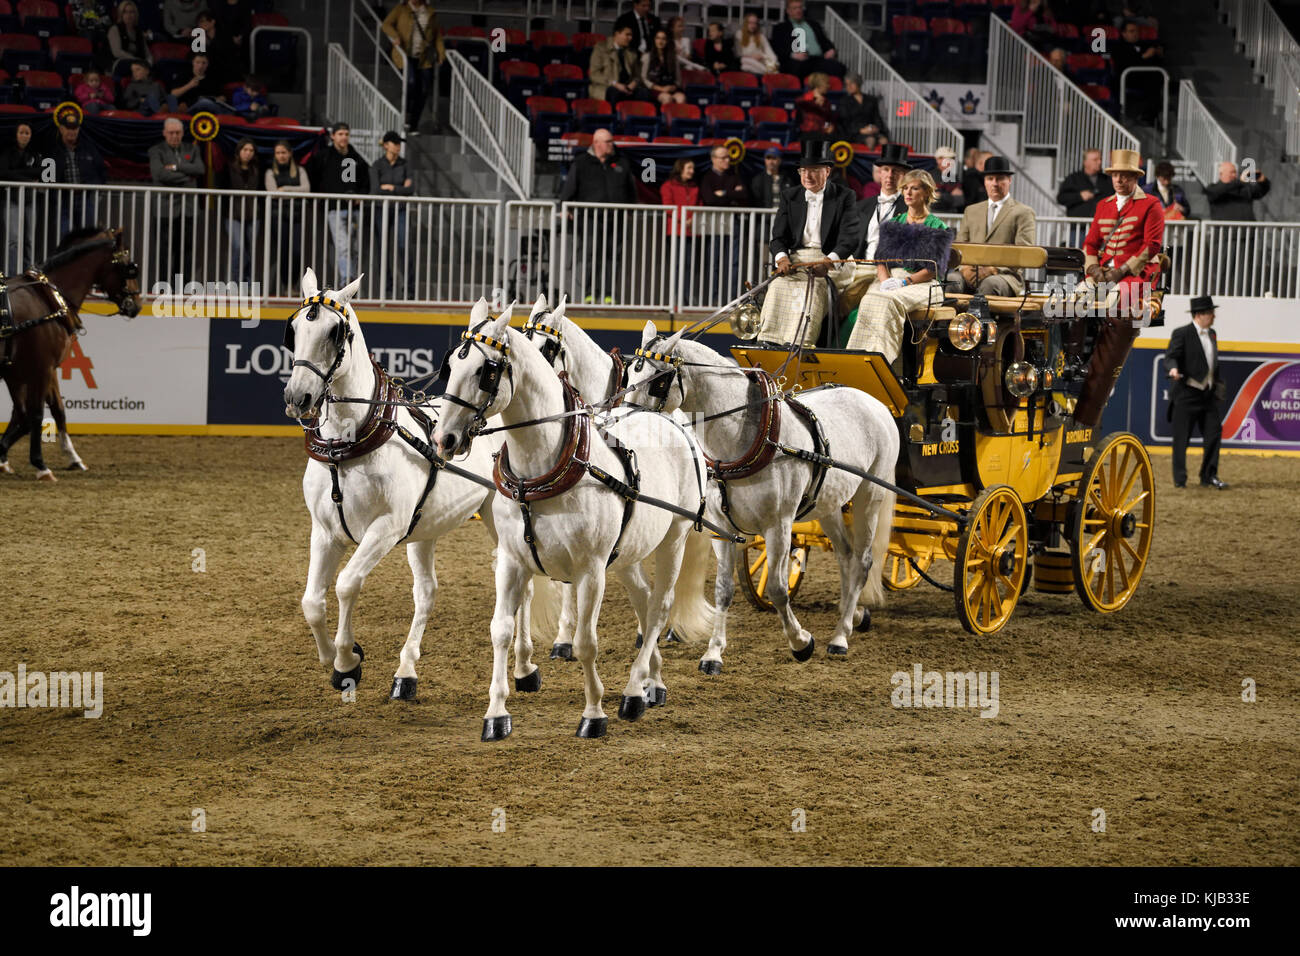 White horses at Green Meadows Four in Hand Coaching Class performance at The Royal Horse Show Ricoh Coliseum Exhibition - Stock Image